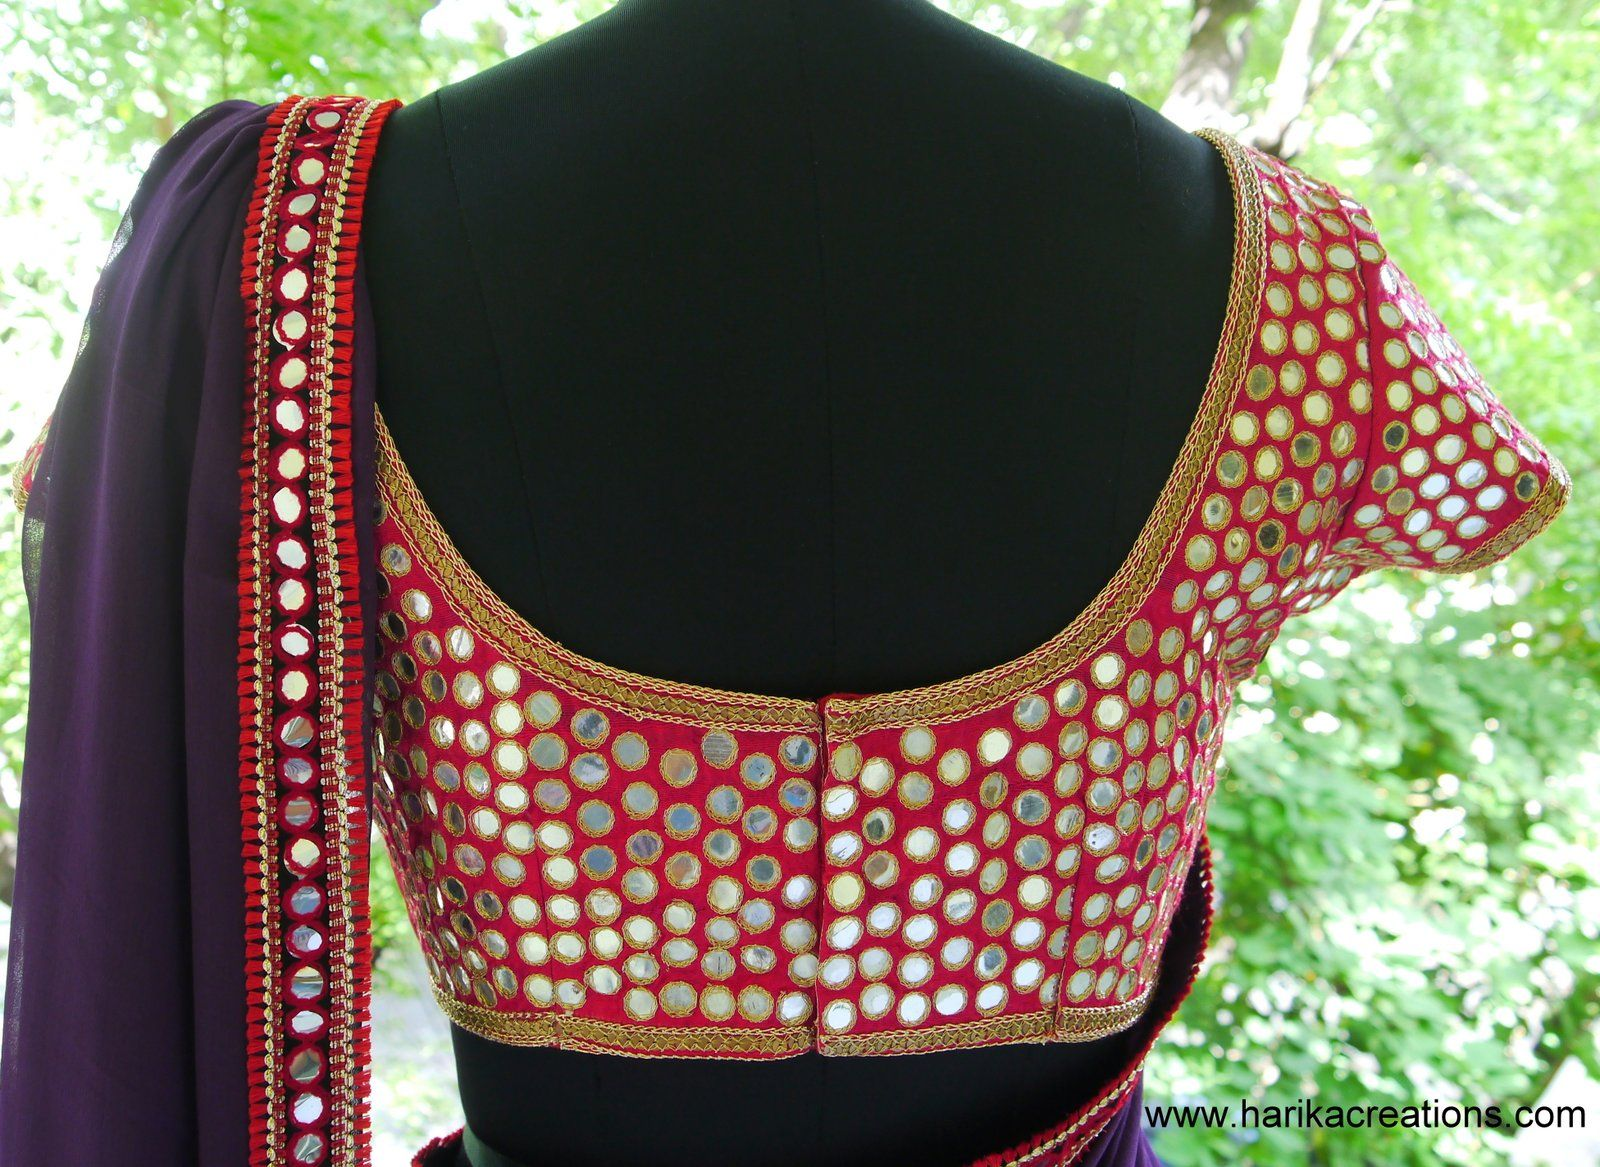 Lehenga blouse design in golden color and mirror work - Mirror Work On A Saree Blouse Indian Fashion